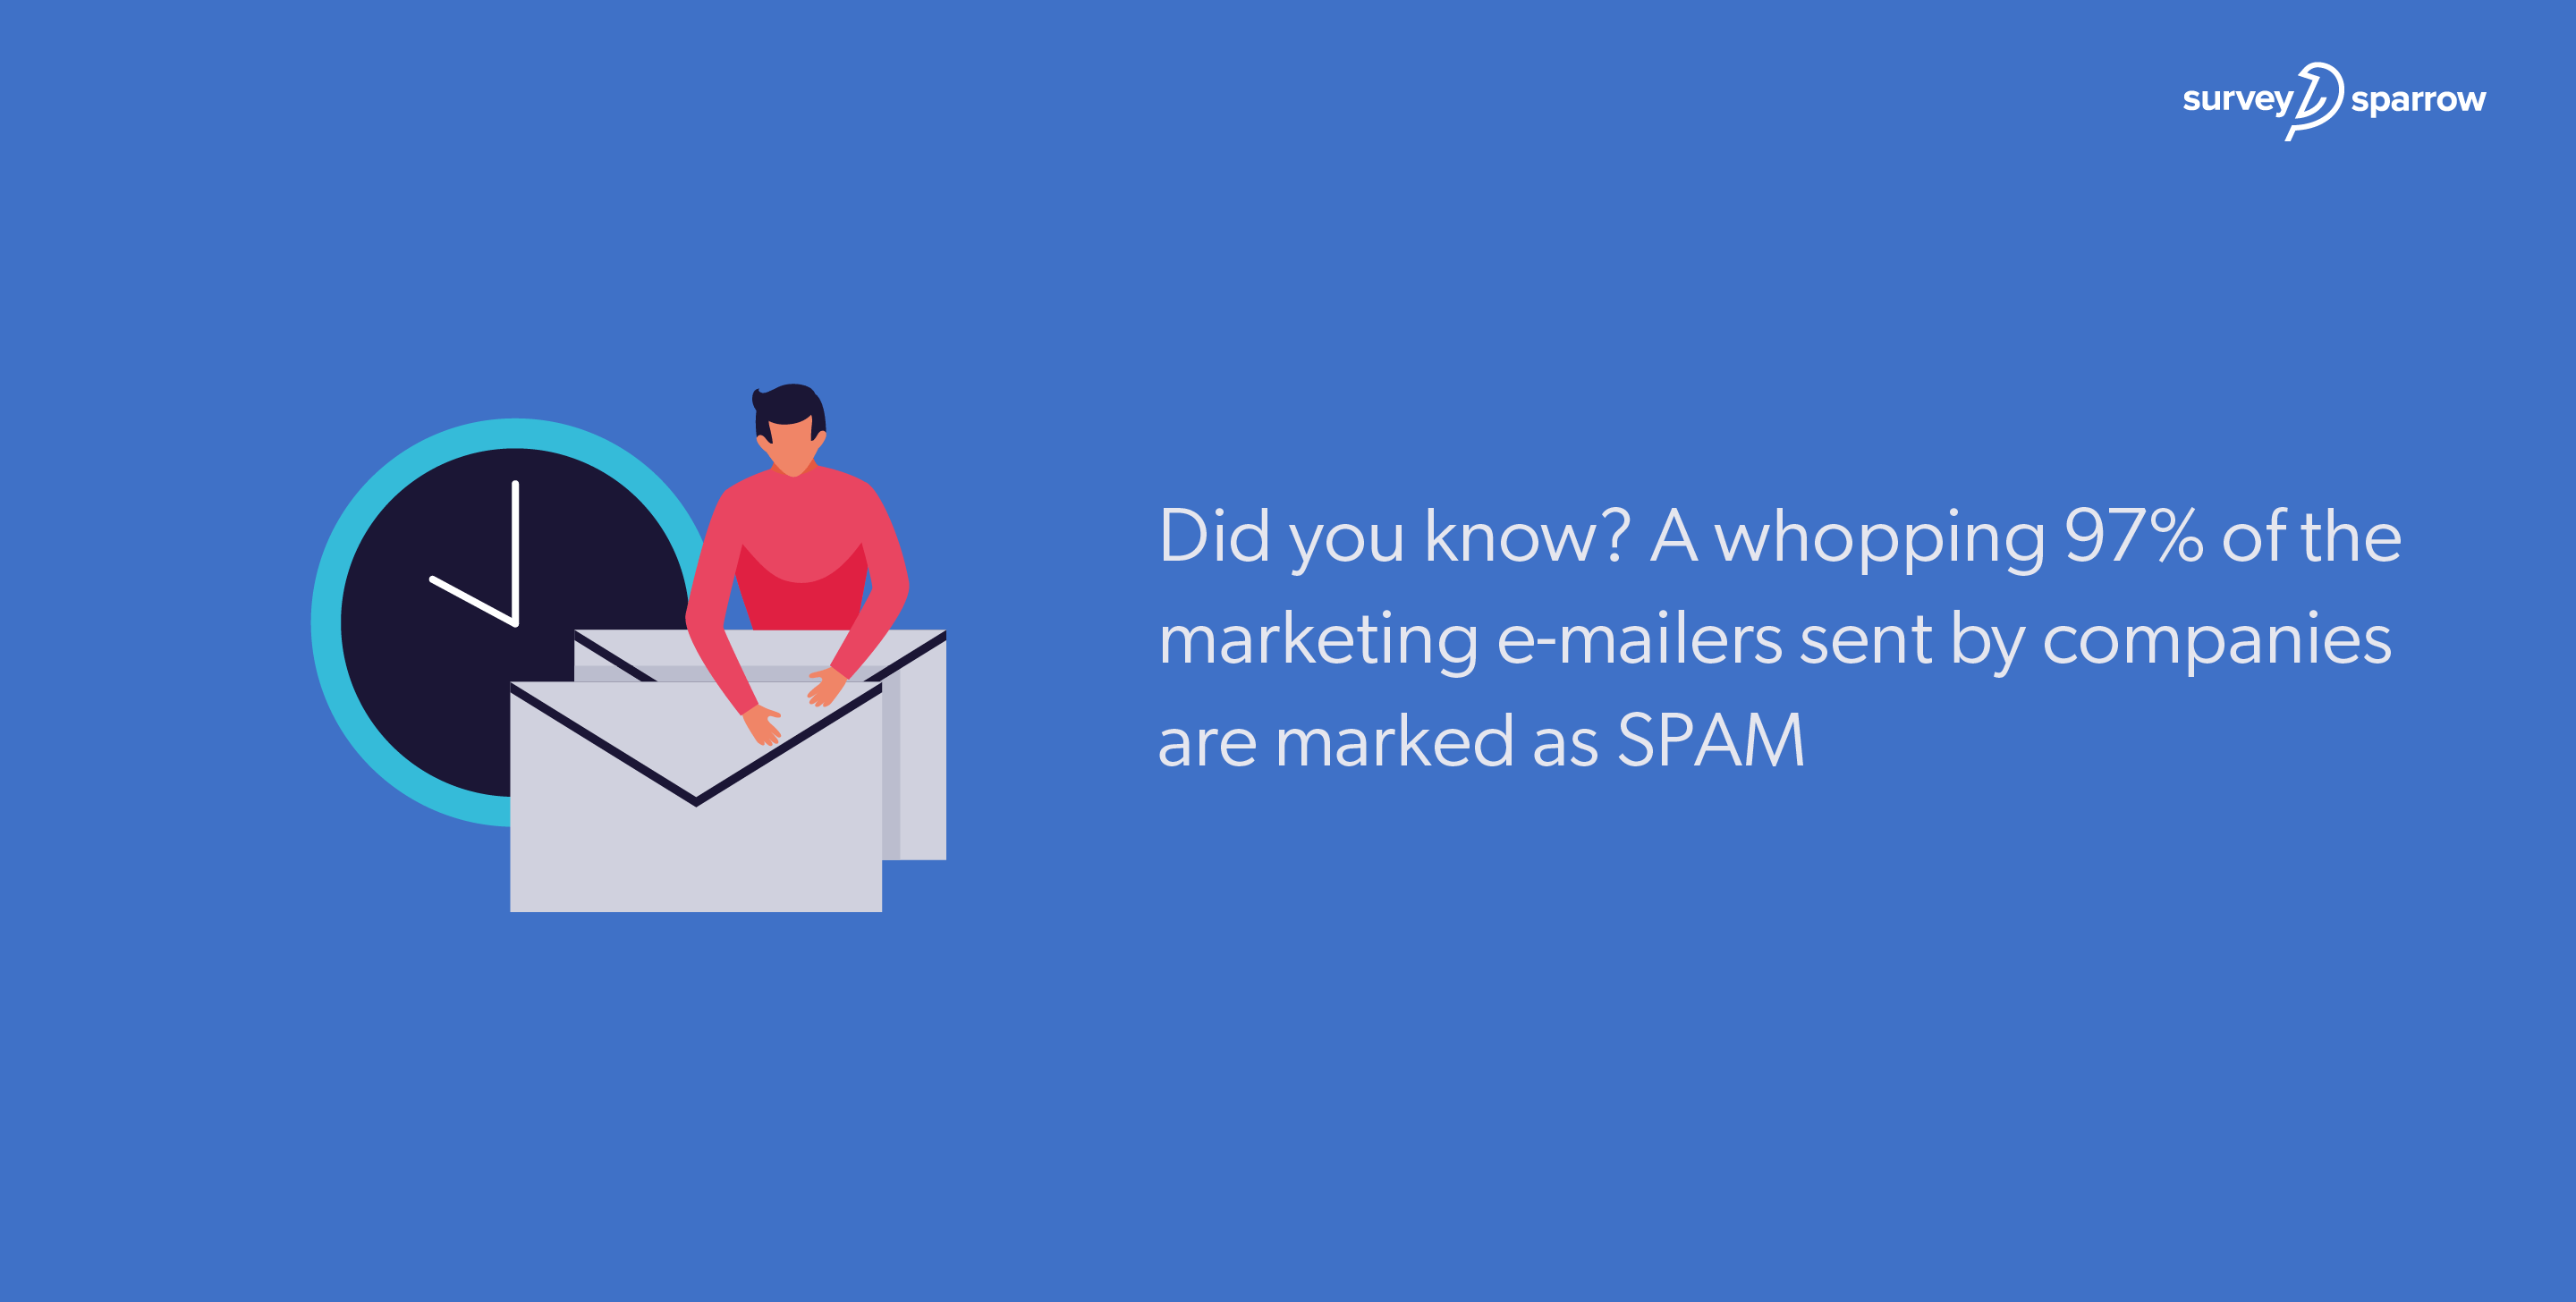 97% of the marketing e-mailers sent by companies are marked as SPAM.